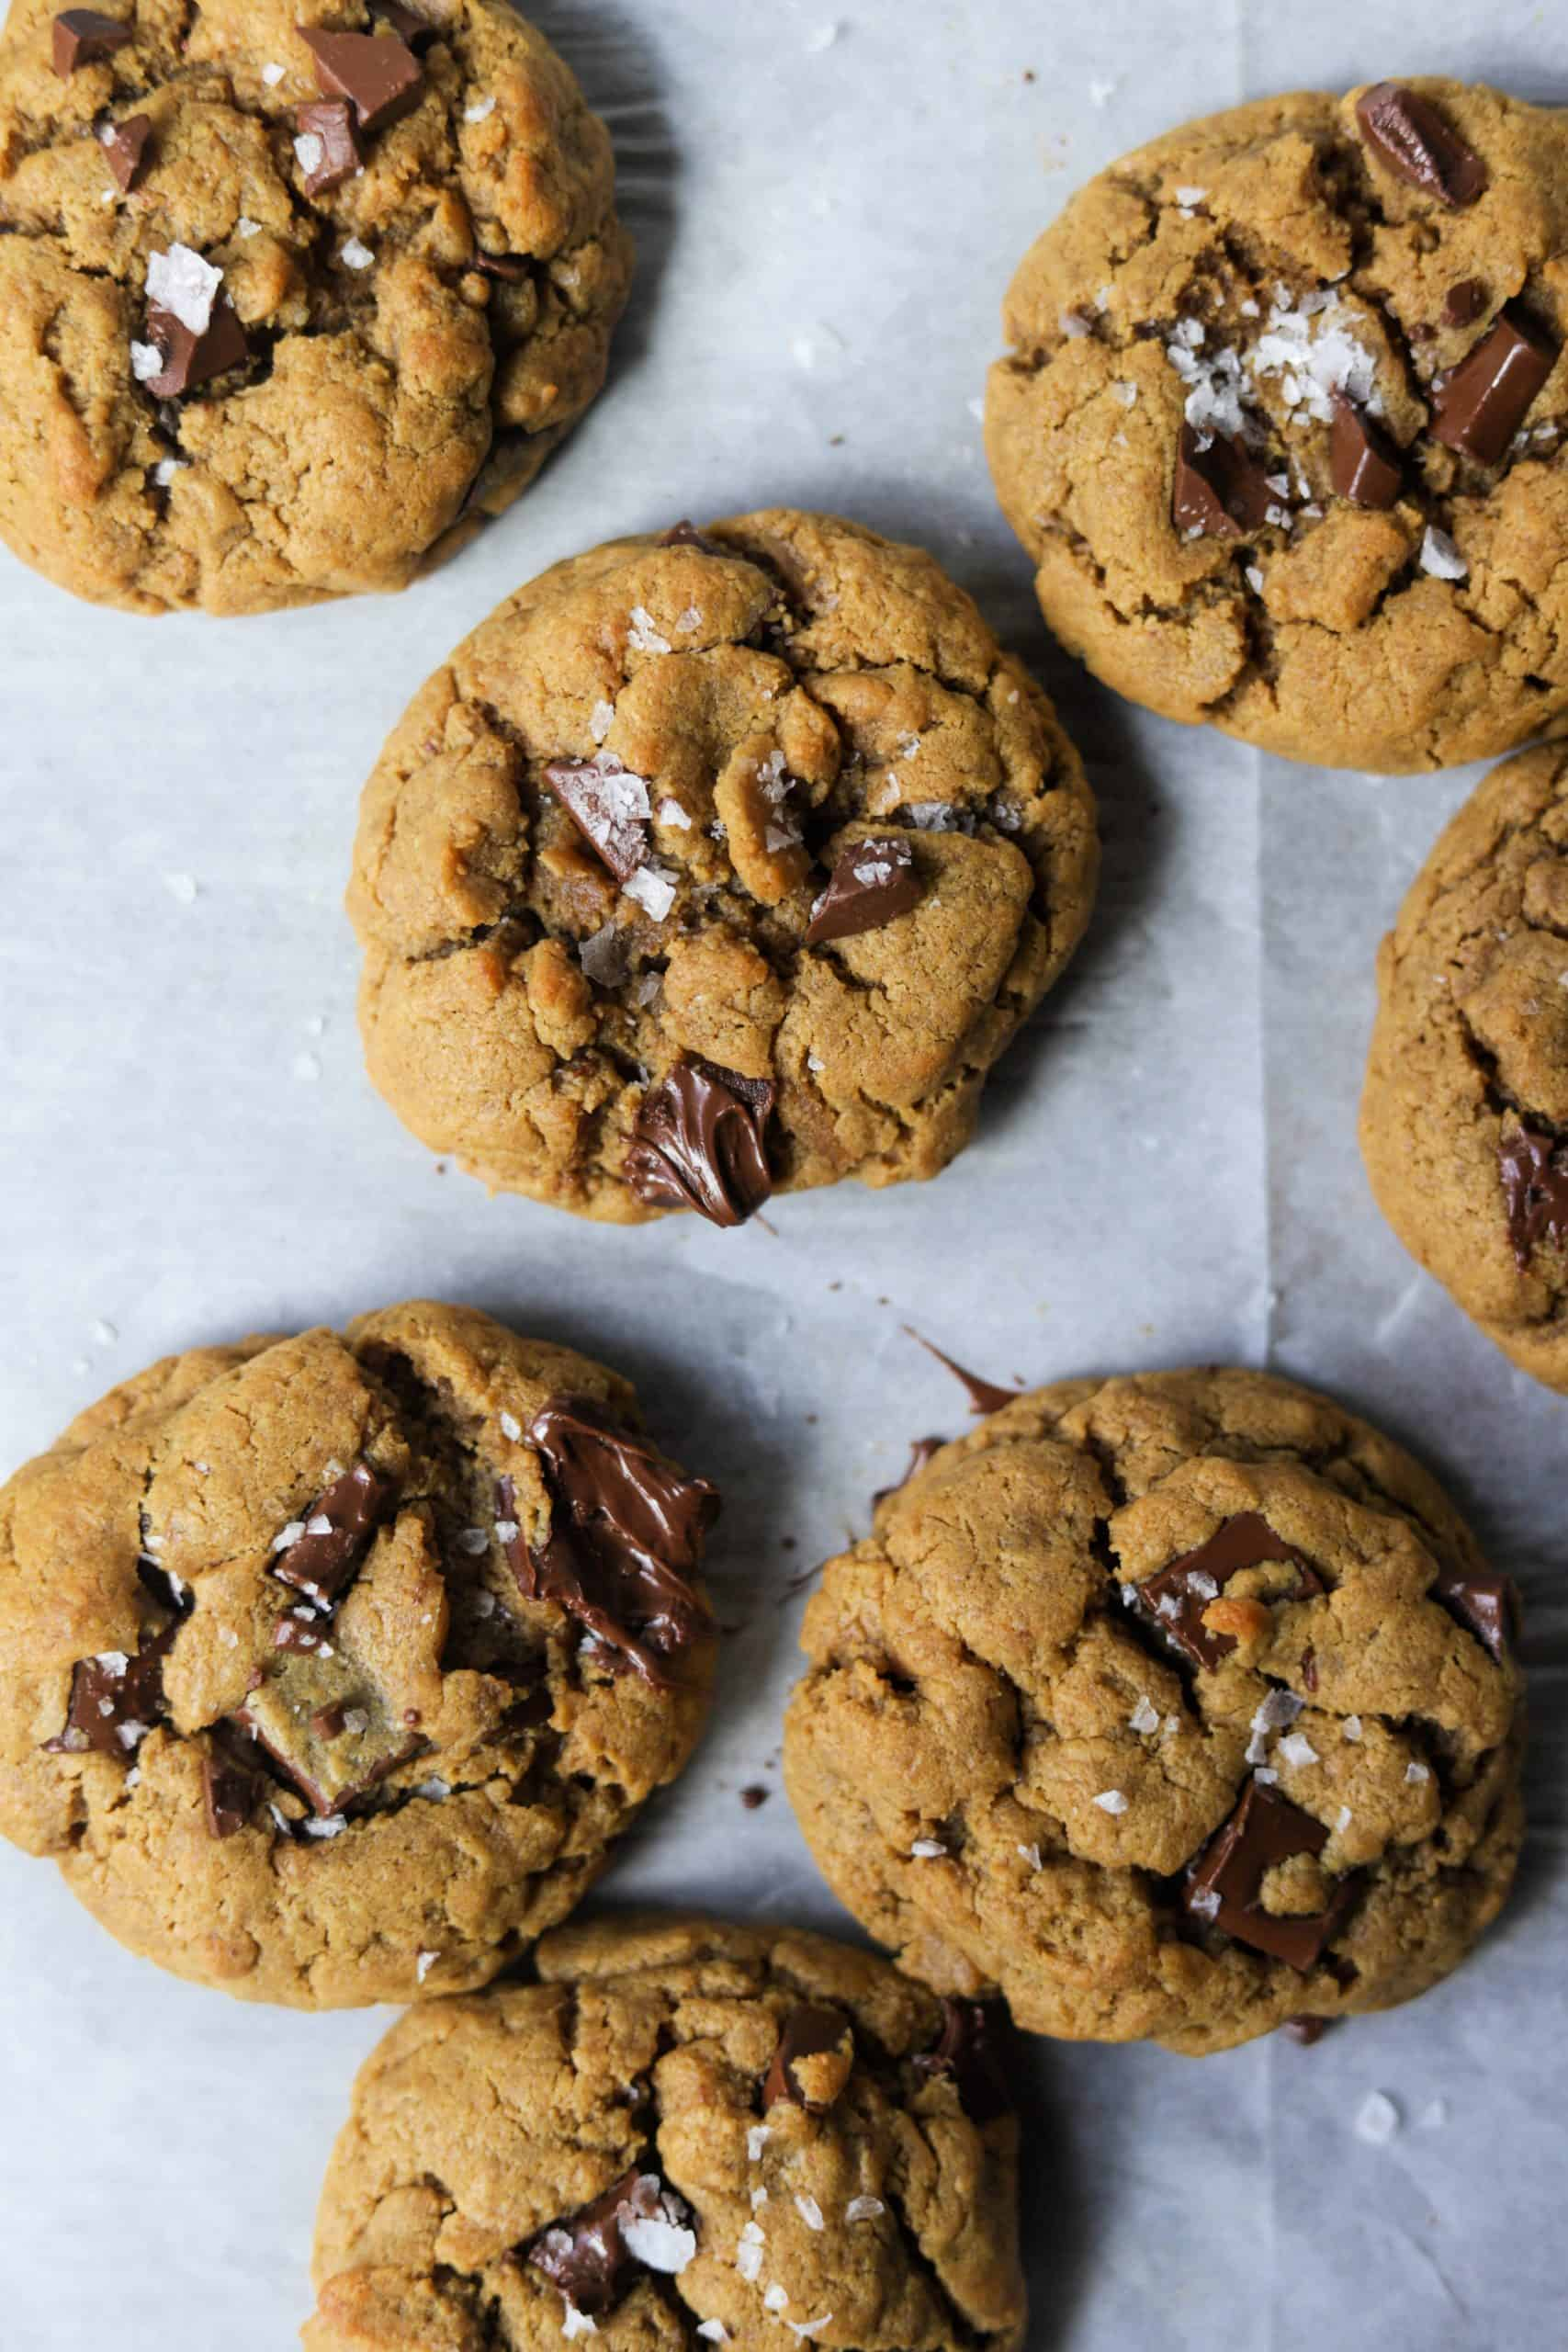 Several peanut butter cookies with chocolate chunks on parchment paper.